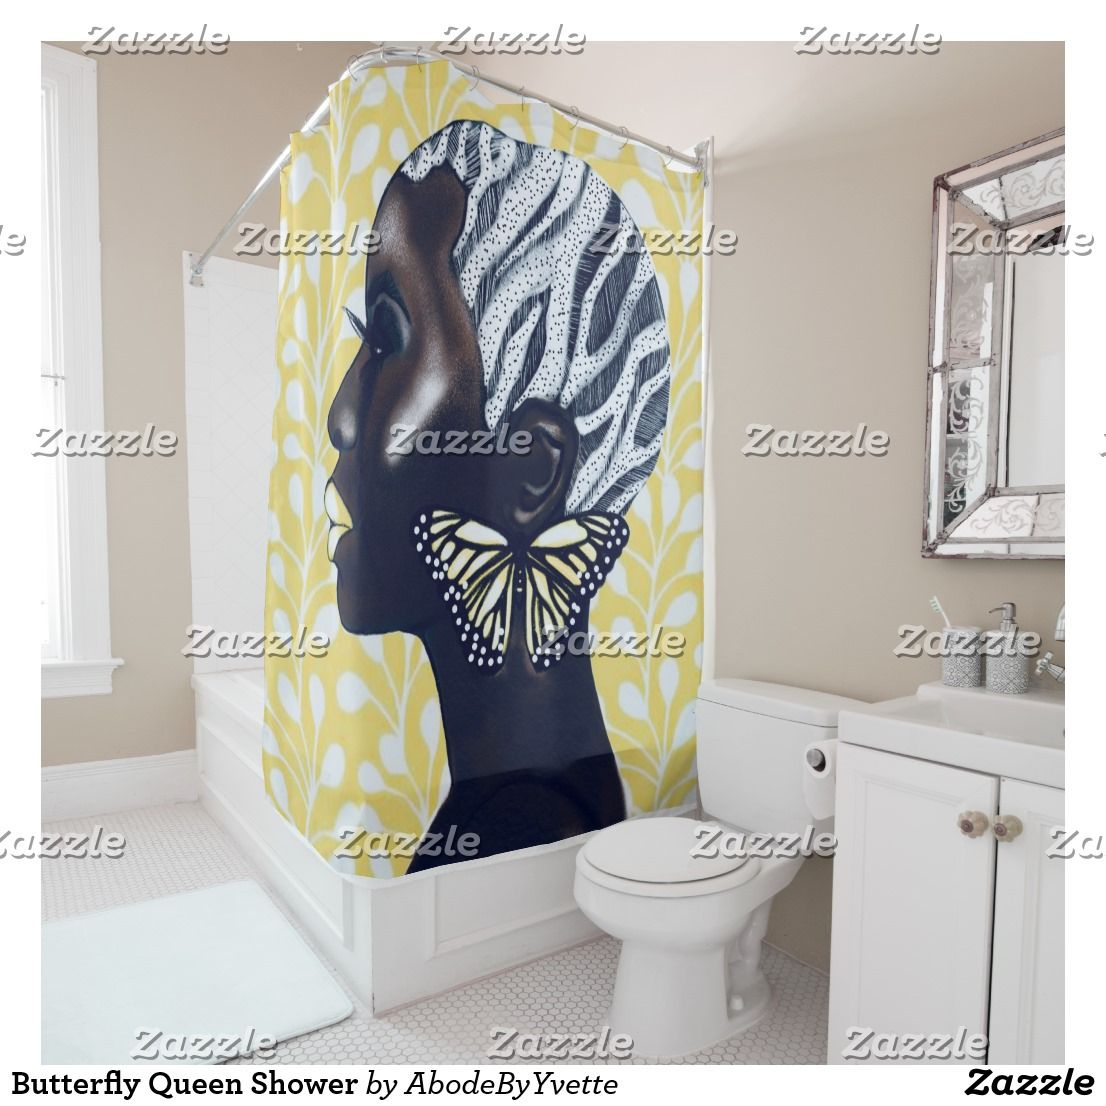 Butterfly Queen Shower Shower Curtain Zazzle Com With Images Fabric Shower Curtains Shower Curtain Curtains